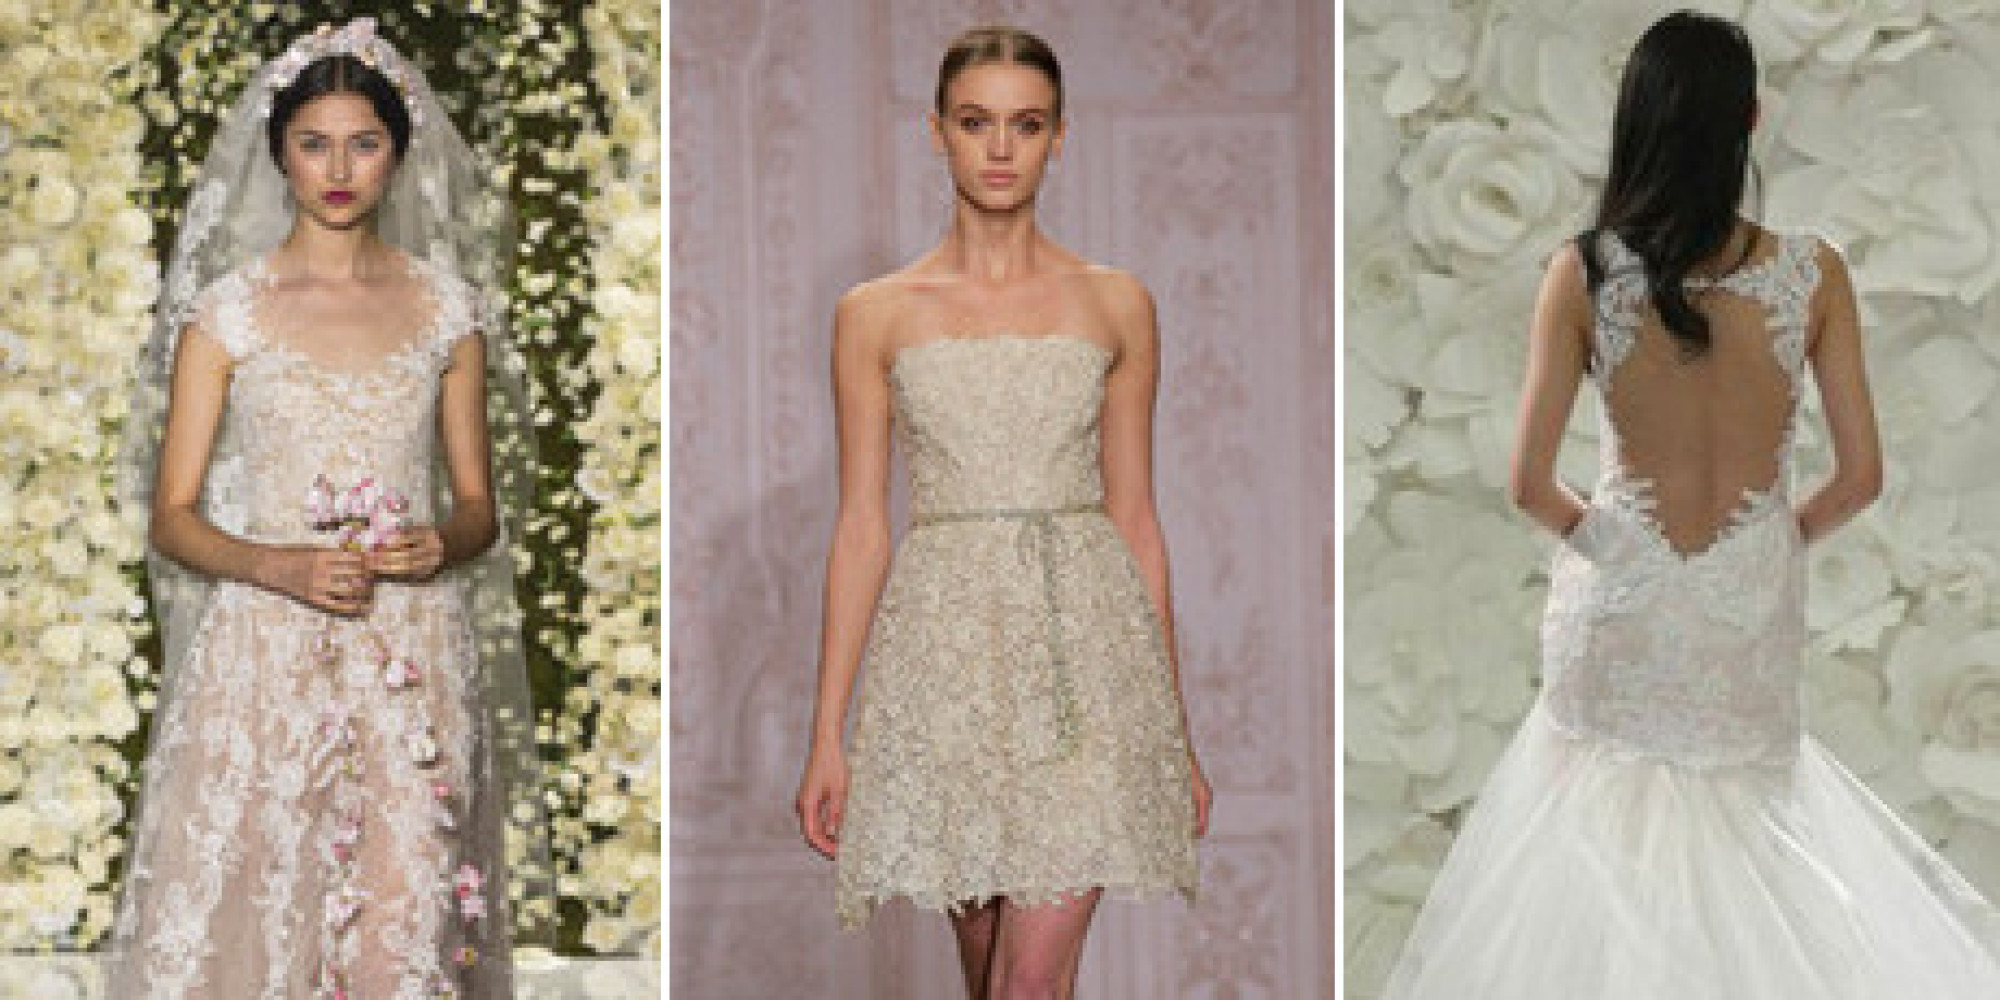 Top Wedding Dress Trends From The Fall 2015 Bridal Runways | HuffPost